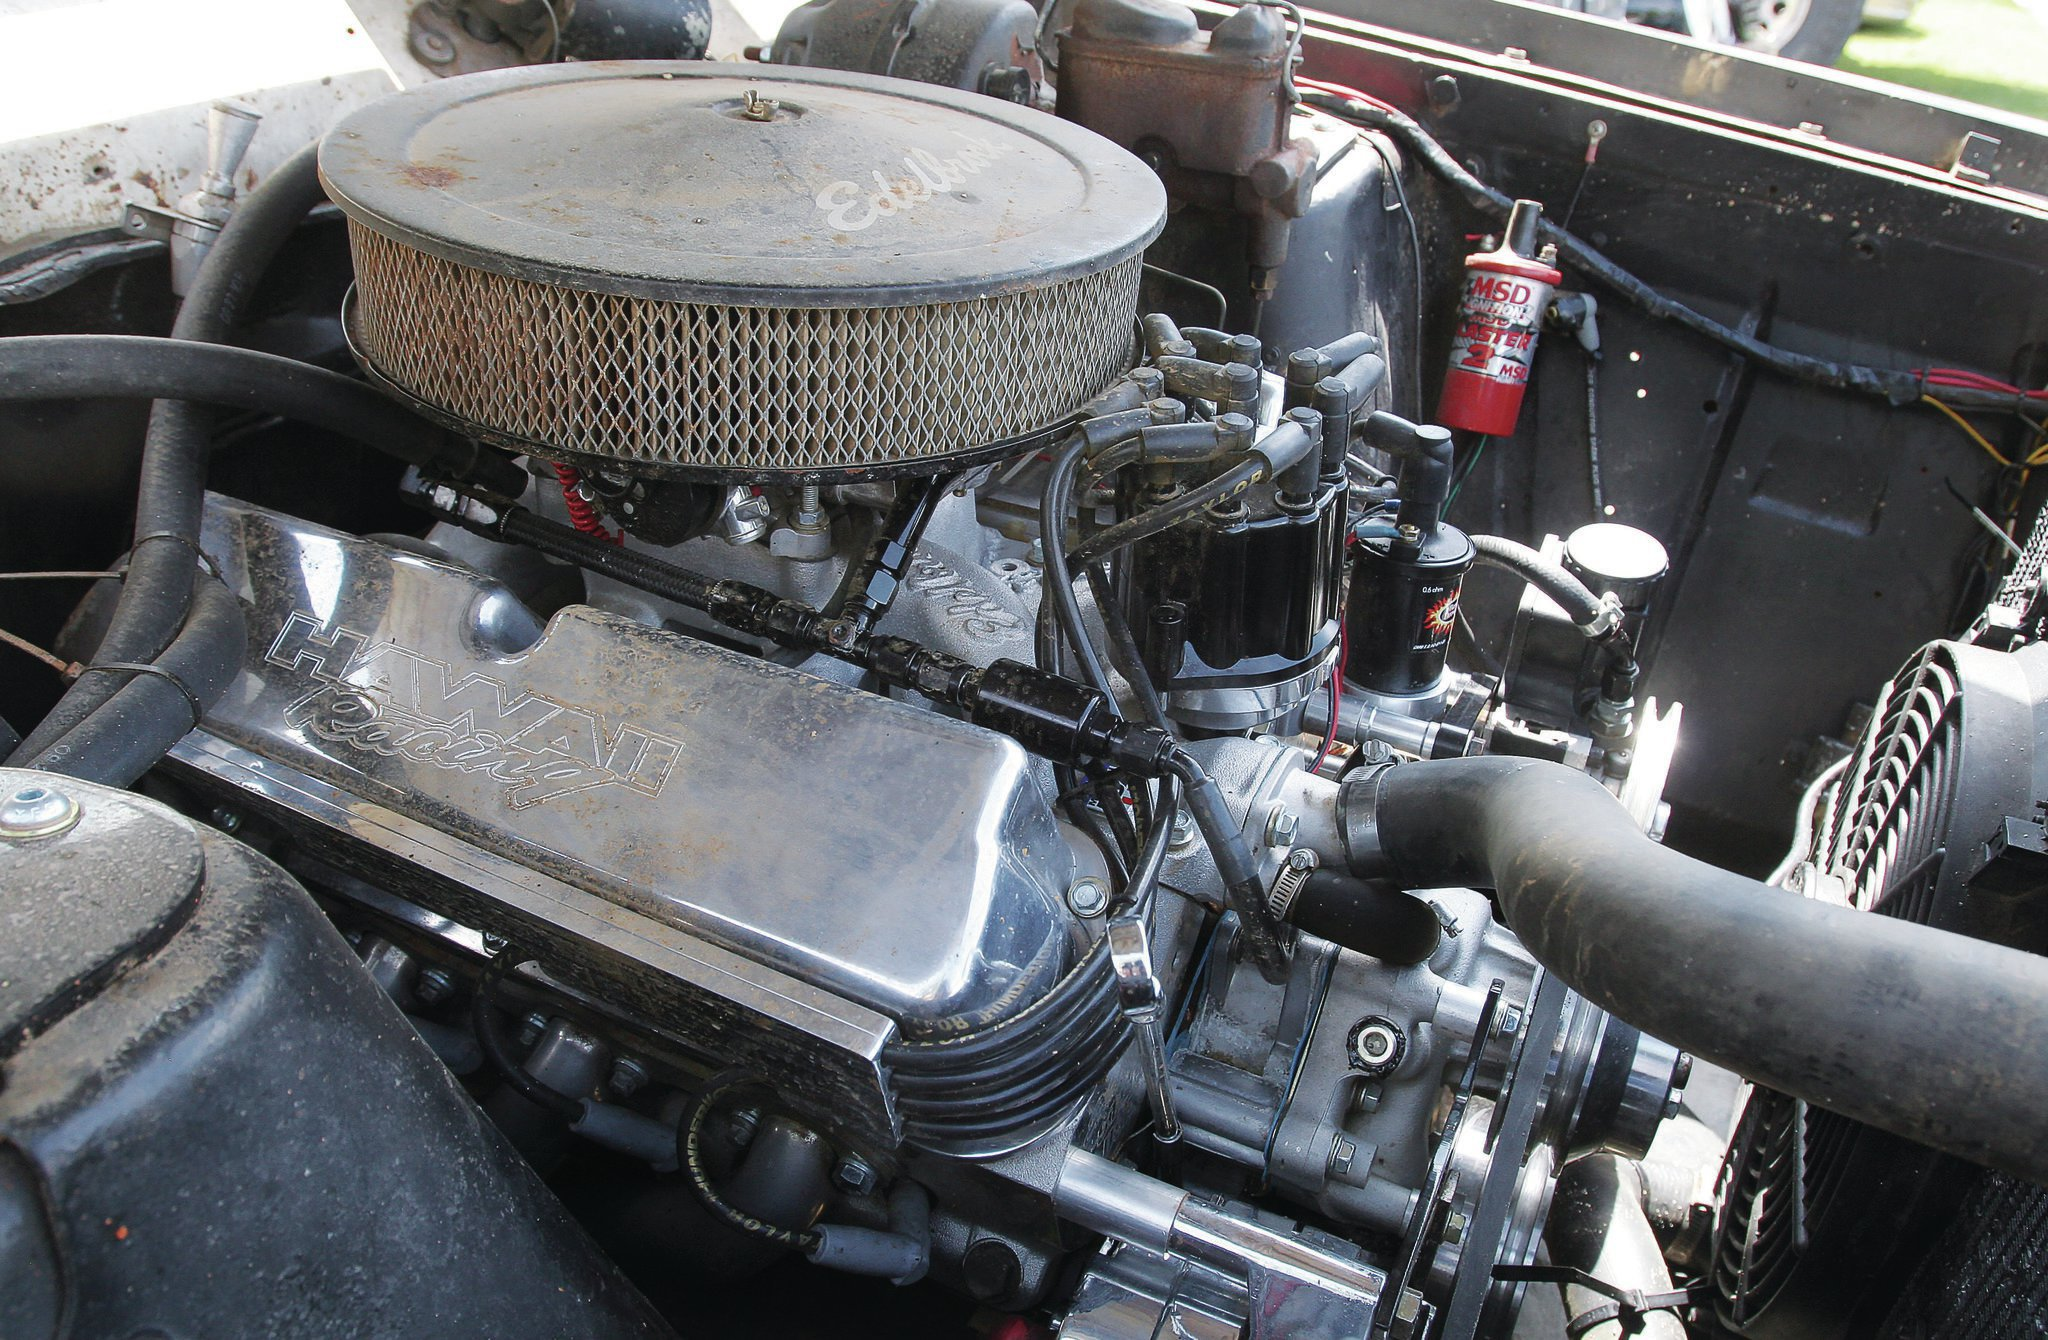 It's dirty because Roadkill, but under that grime is a 340-horse Ford 302 from Hawaii Racing coupled to a Level 4 C4 from Gearstar. It's a mild roller-cam build topped with Edelbrock E-Street Aluminum heads. Joe Souza at Hawaii Racing assembled the mill with a full set of pulleys and brackets, which solved some problems from the previous engine swap. Never underestimate the importance of a matched accessory set. Plans are in the works for power steering. The boys are going to be spoiled!